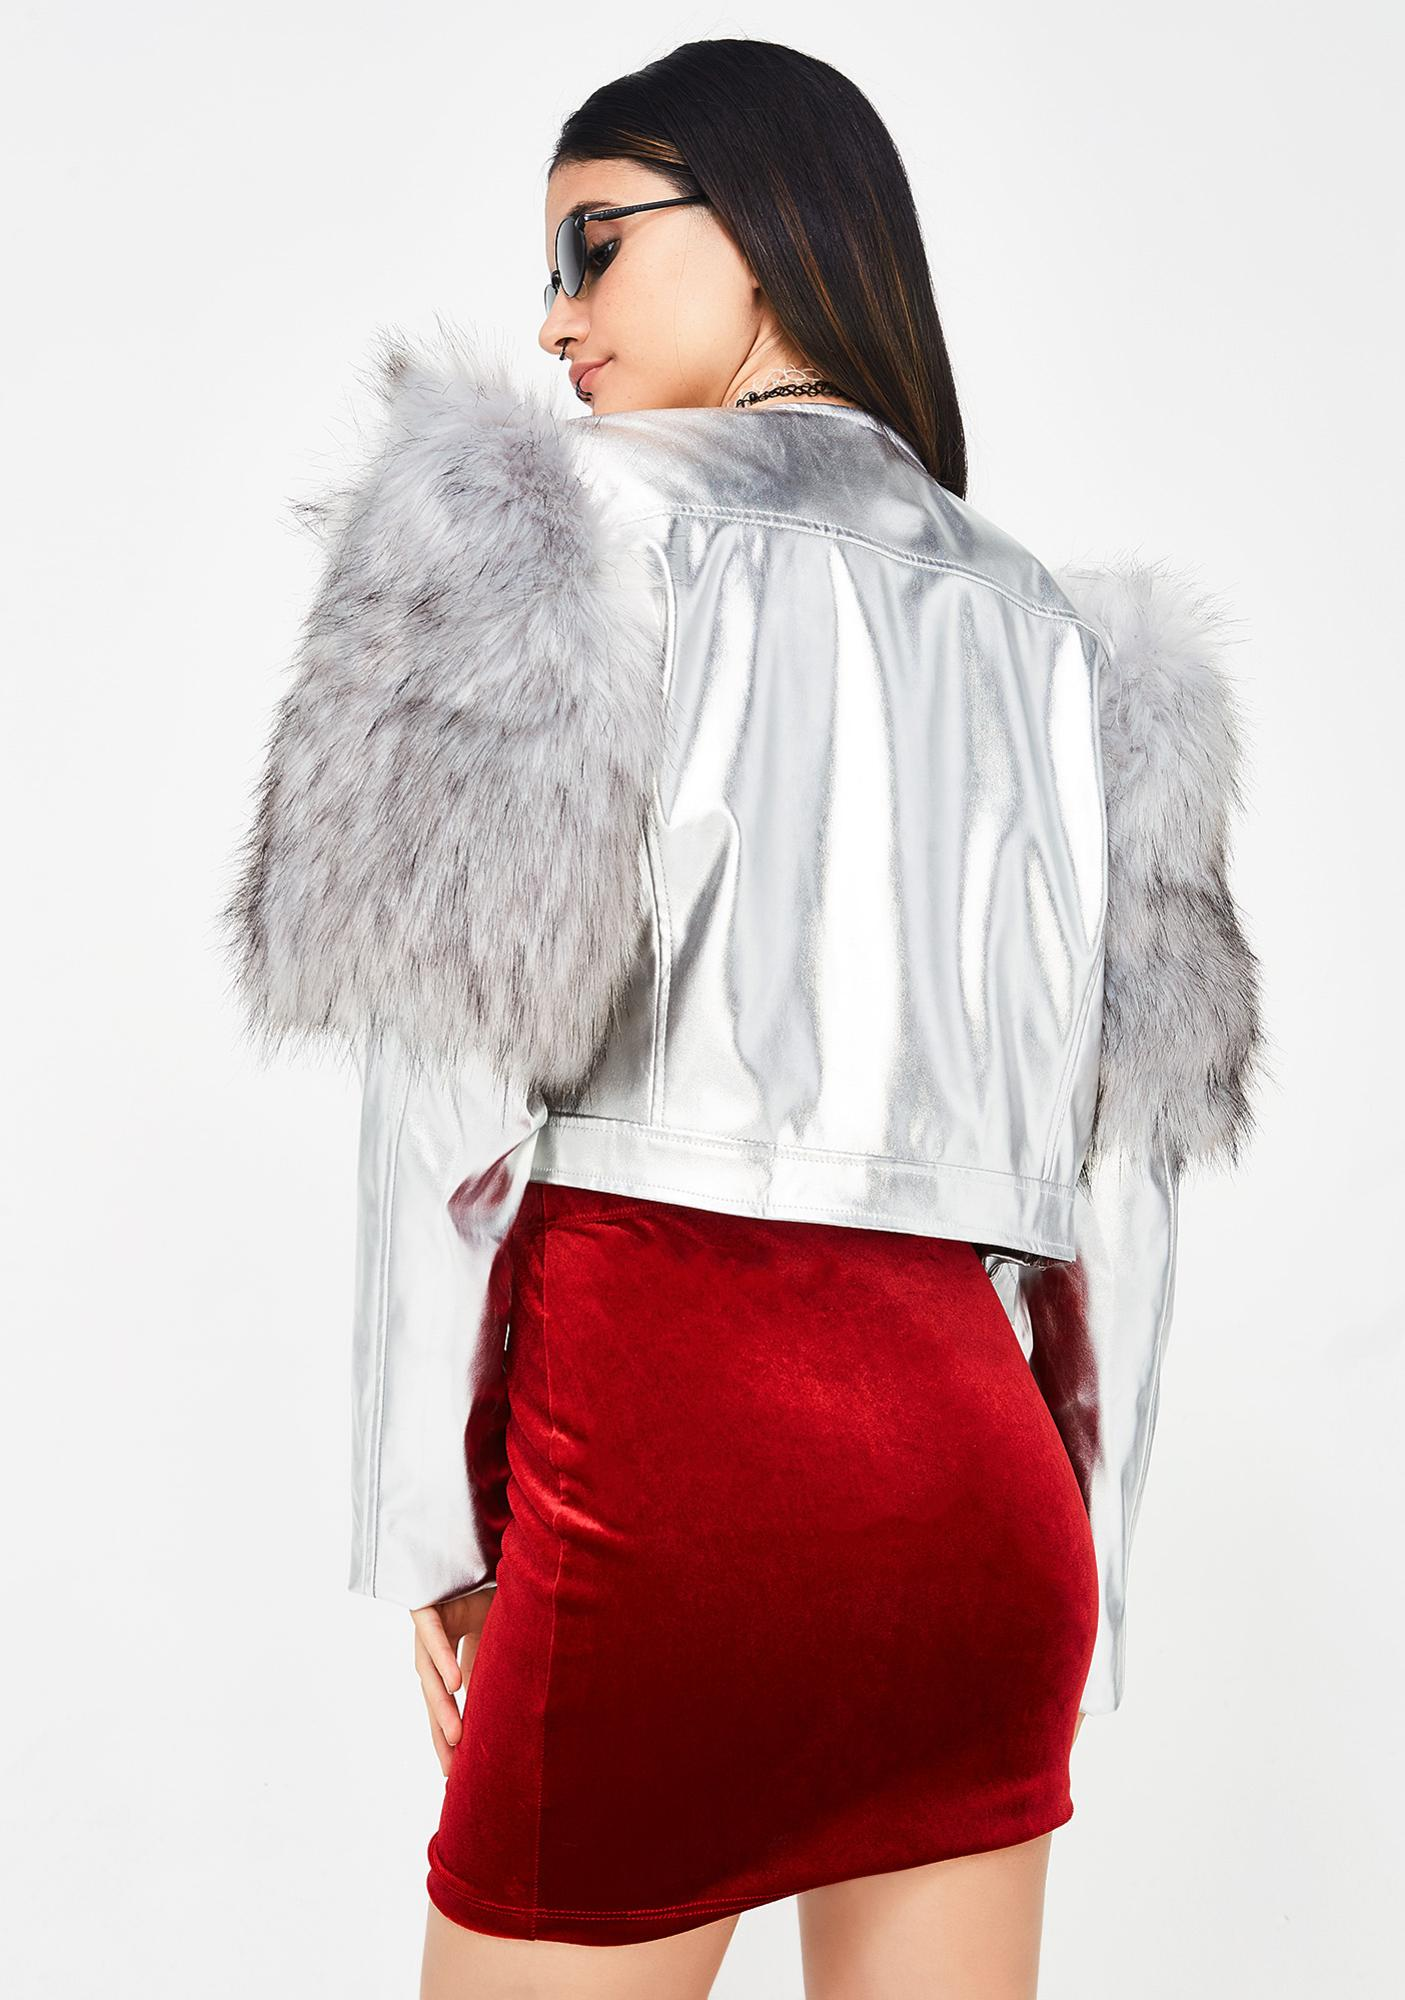 Silver Different Angle Jacket